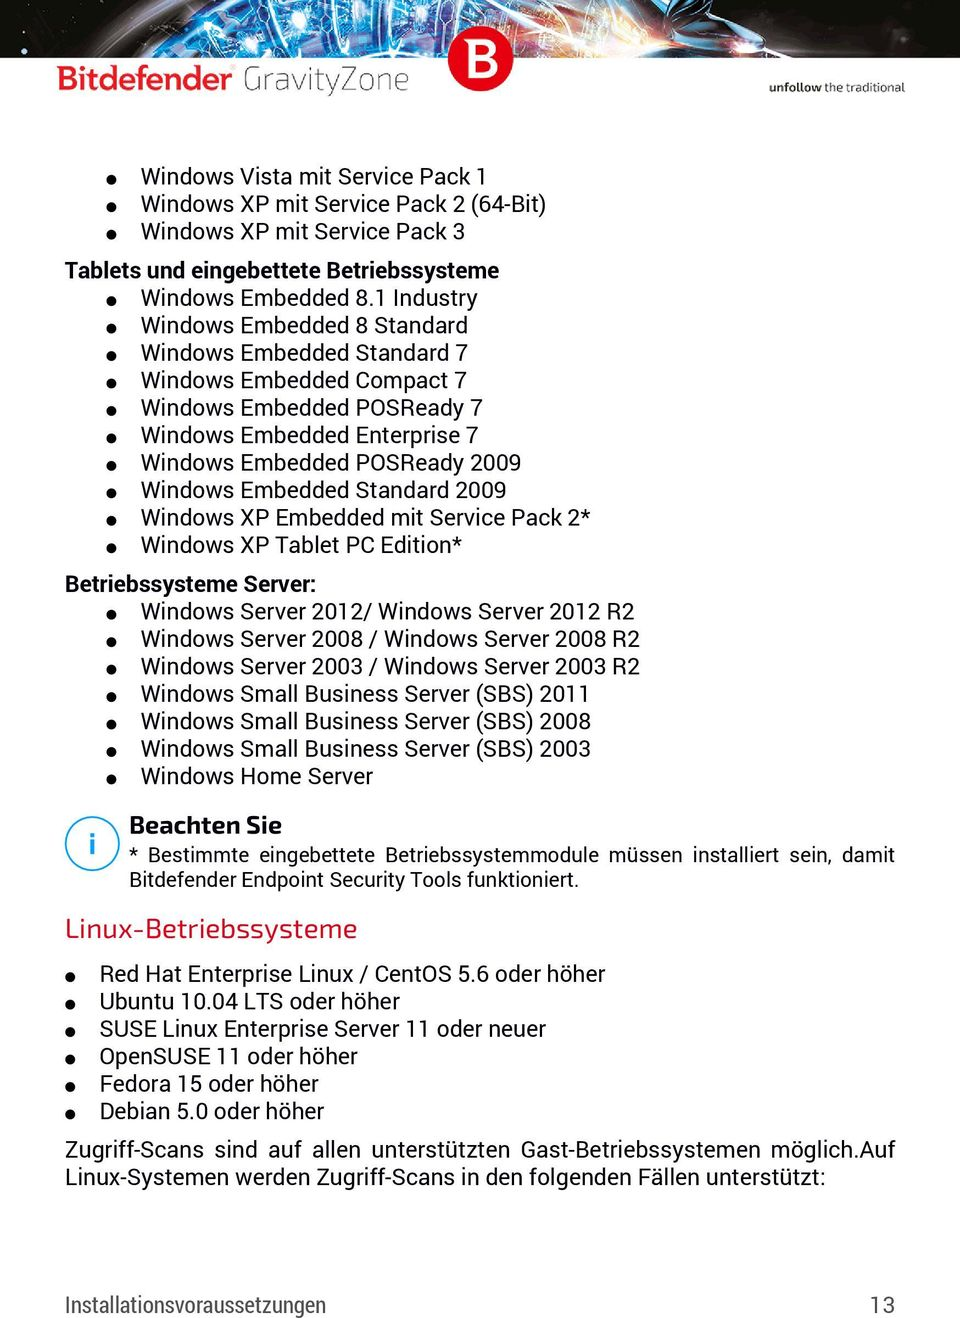 Standard 2009 Windows XP Embedded mit Service Pack 2* Windows XP Tablet PC Edition* Betriebssysteme Server: Windows Server 2012/ Windows Server 2012 R2 Windows Server 2008 / Windows Server 2008 R2